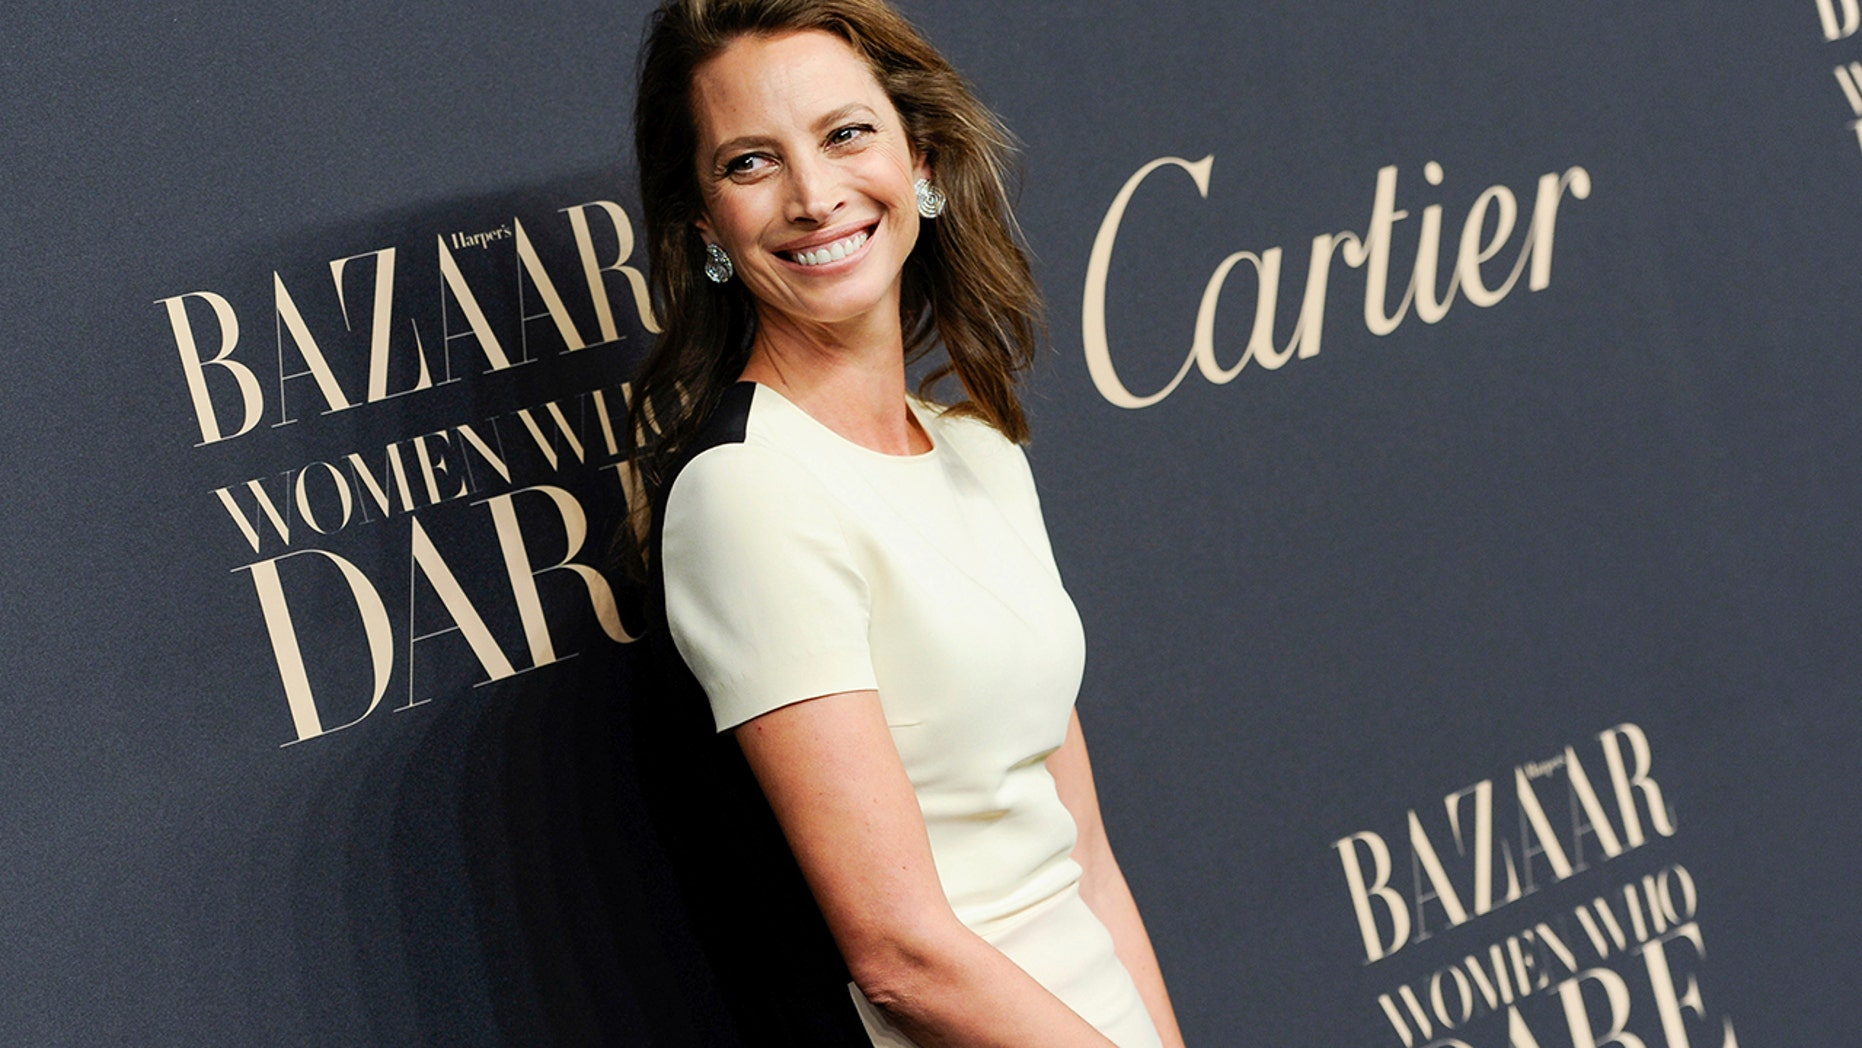 In this Nov. 12, 2014 file photo, model Christy Turlington Burns attends the Panthere de Cartier Collection event in New York. Turlington Burns tells Women's Wear Daily that sexual harassment and mistreatment of models was always widely known. In the interview published Wednesday, she said her mother was often with her in her younger, earlier days in the business.